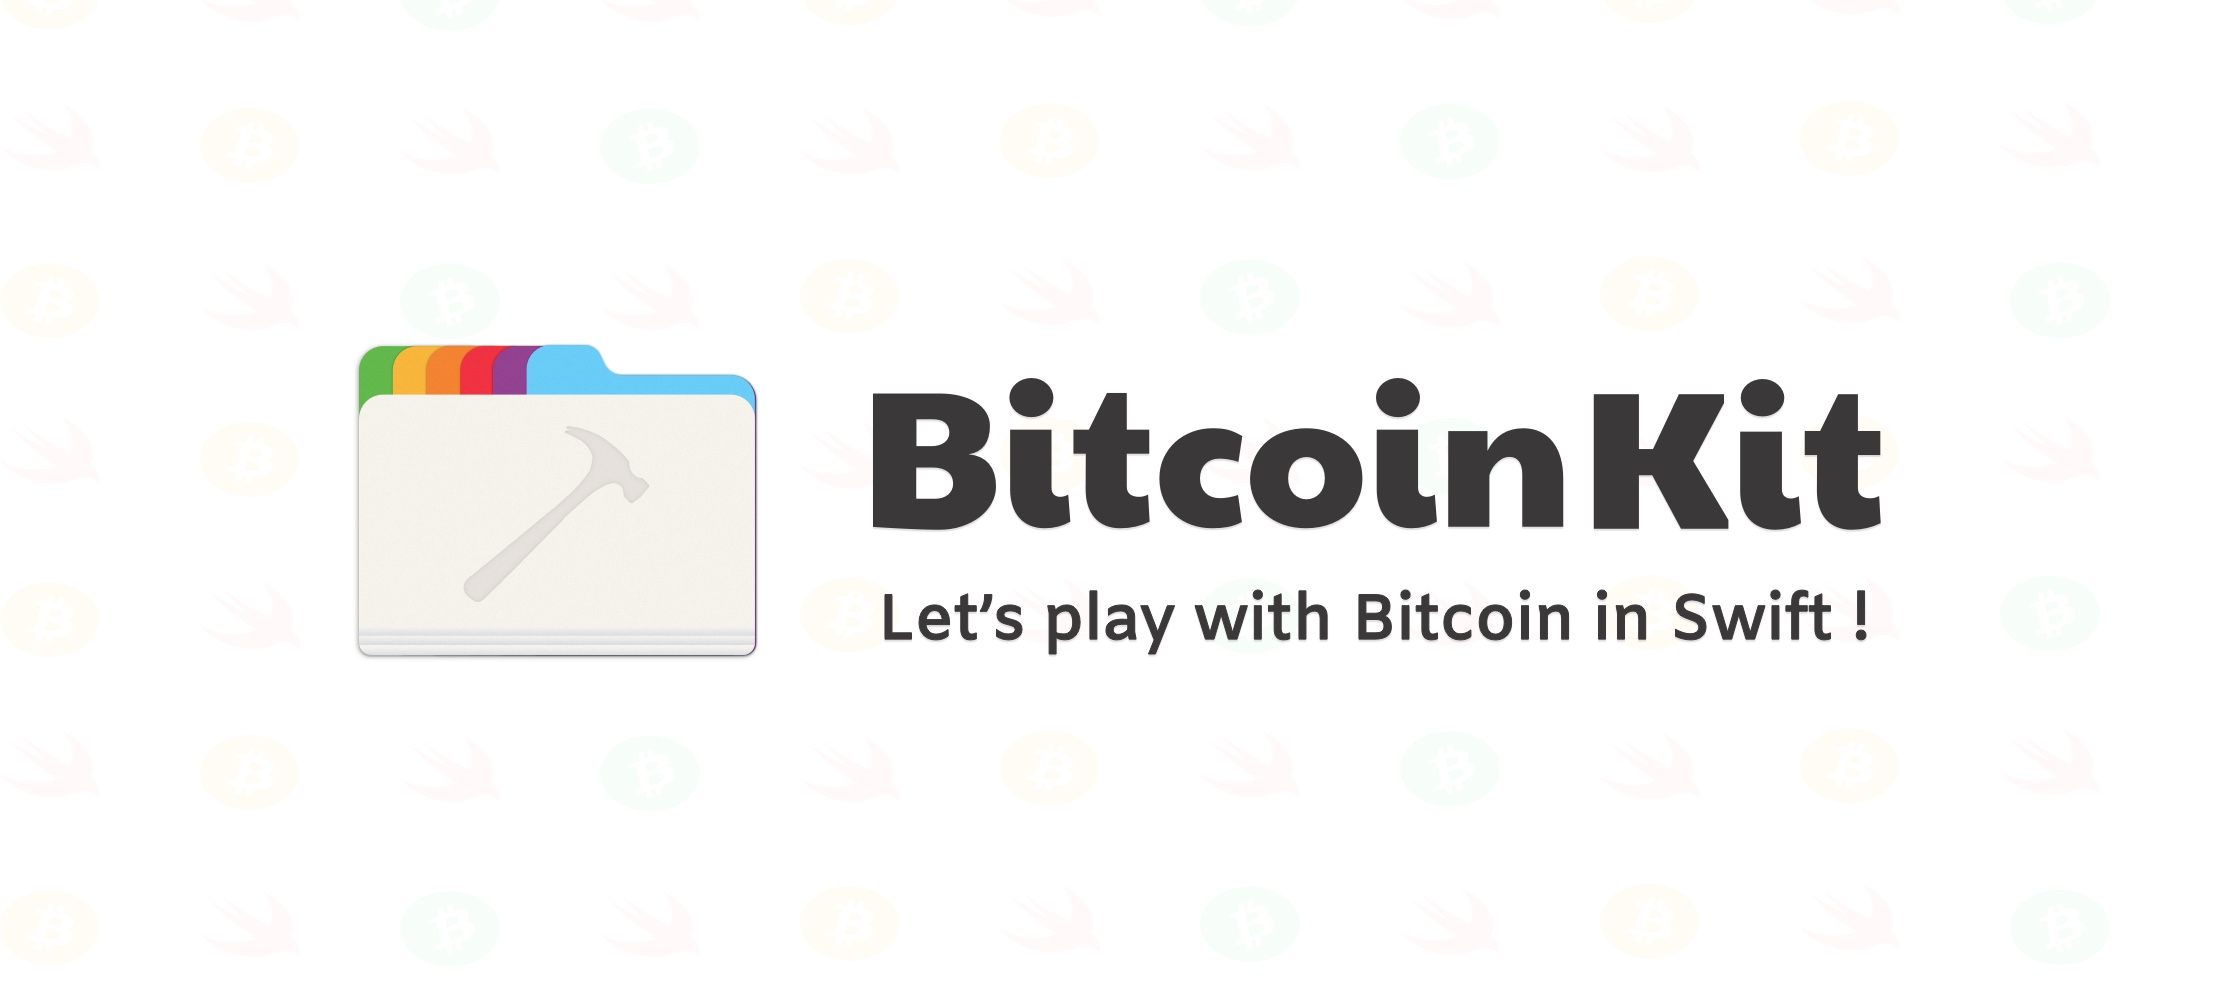 BitcoinKit: Let's Play with Bitcoin in Swift!